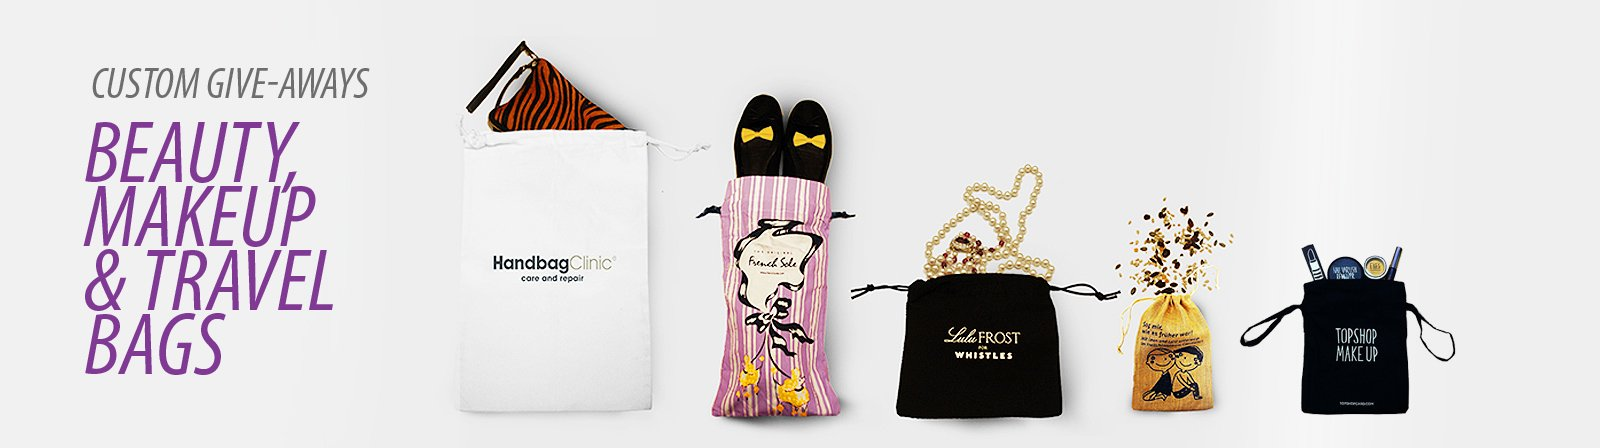 Luxury makeup bags and pouches